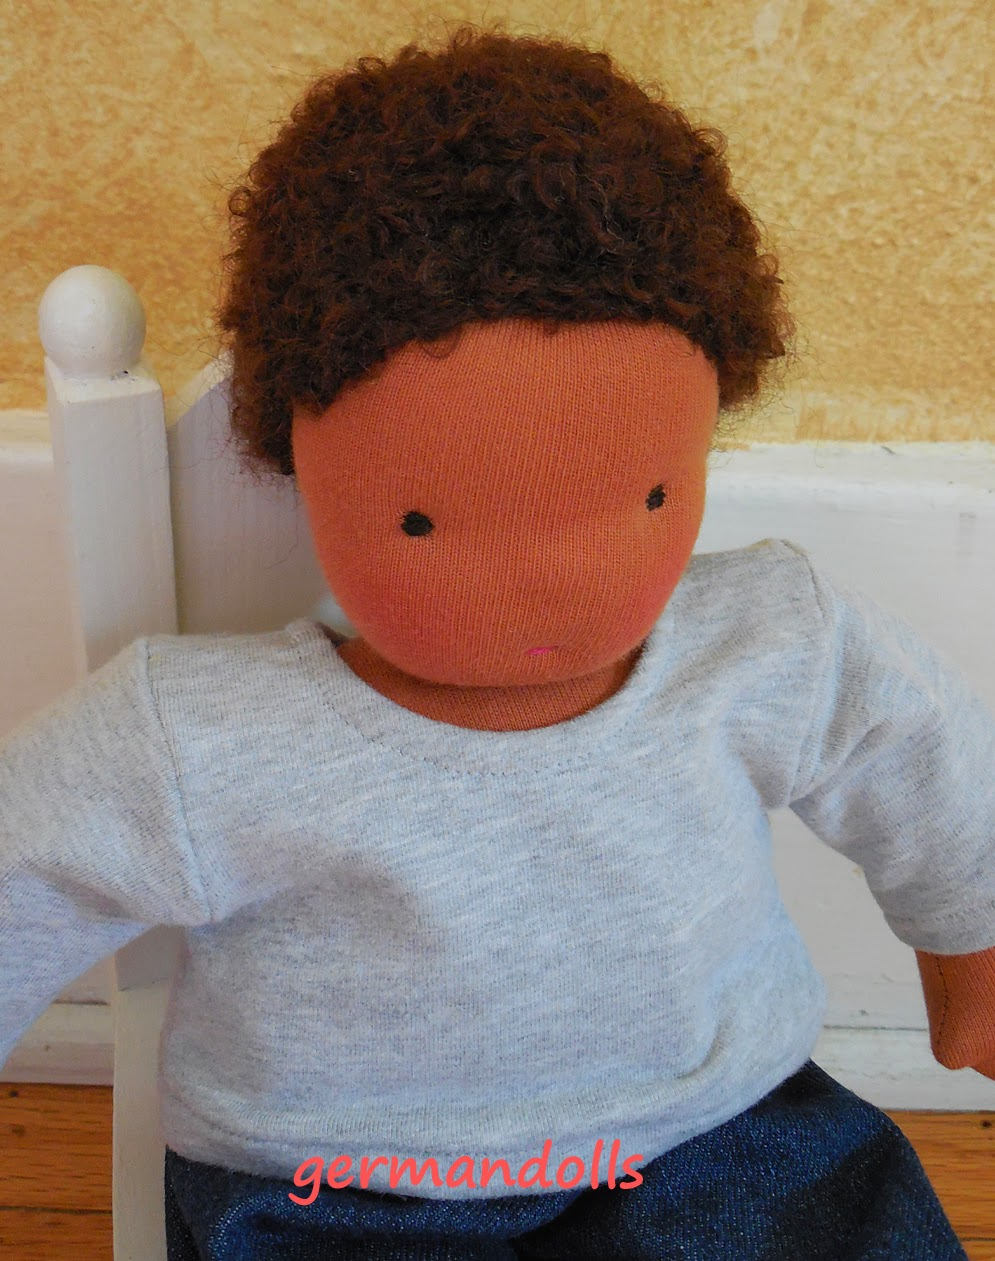 https://www.etsy.com/listing/184992046/cinnamon-11-inch-waldorf-style-doll?ref=shop_home_active_1